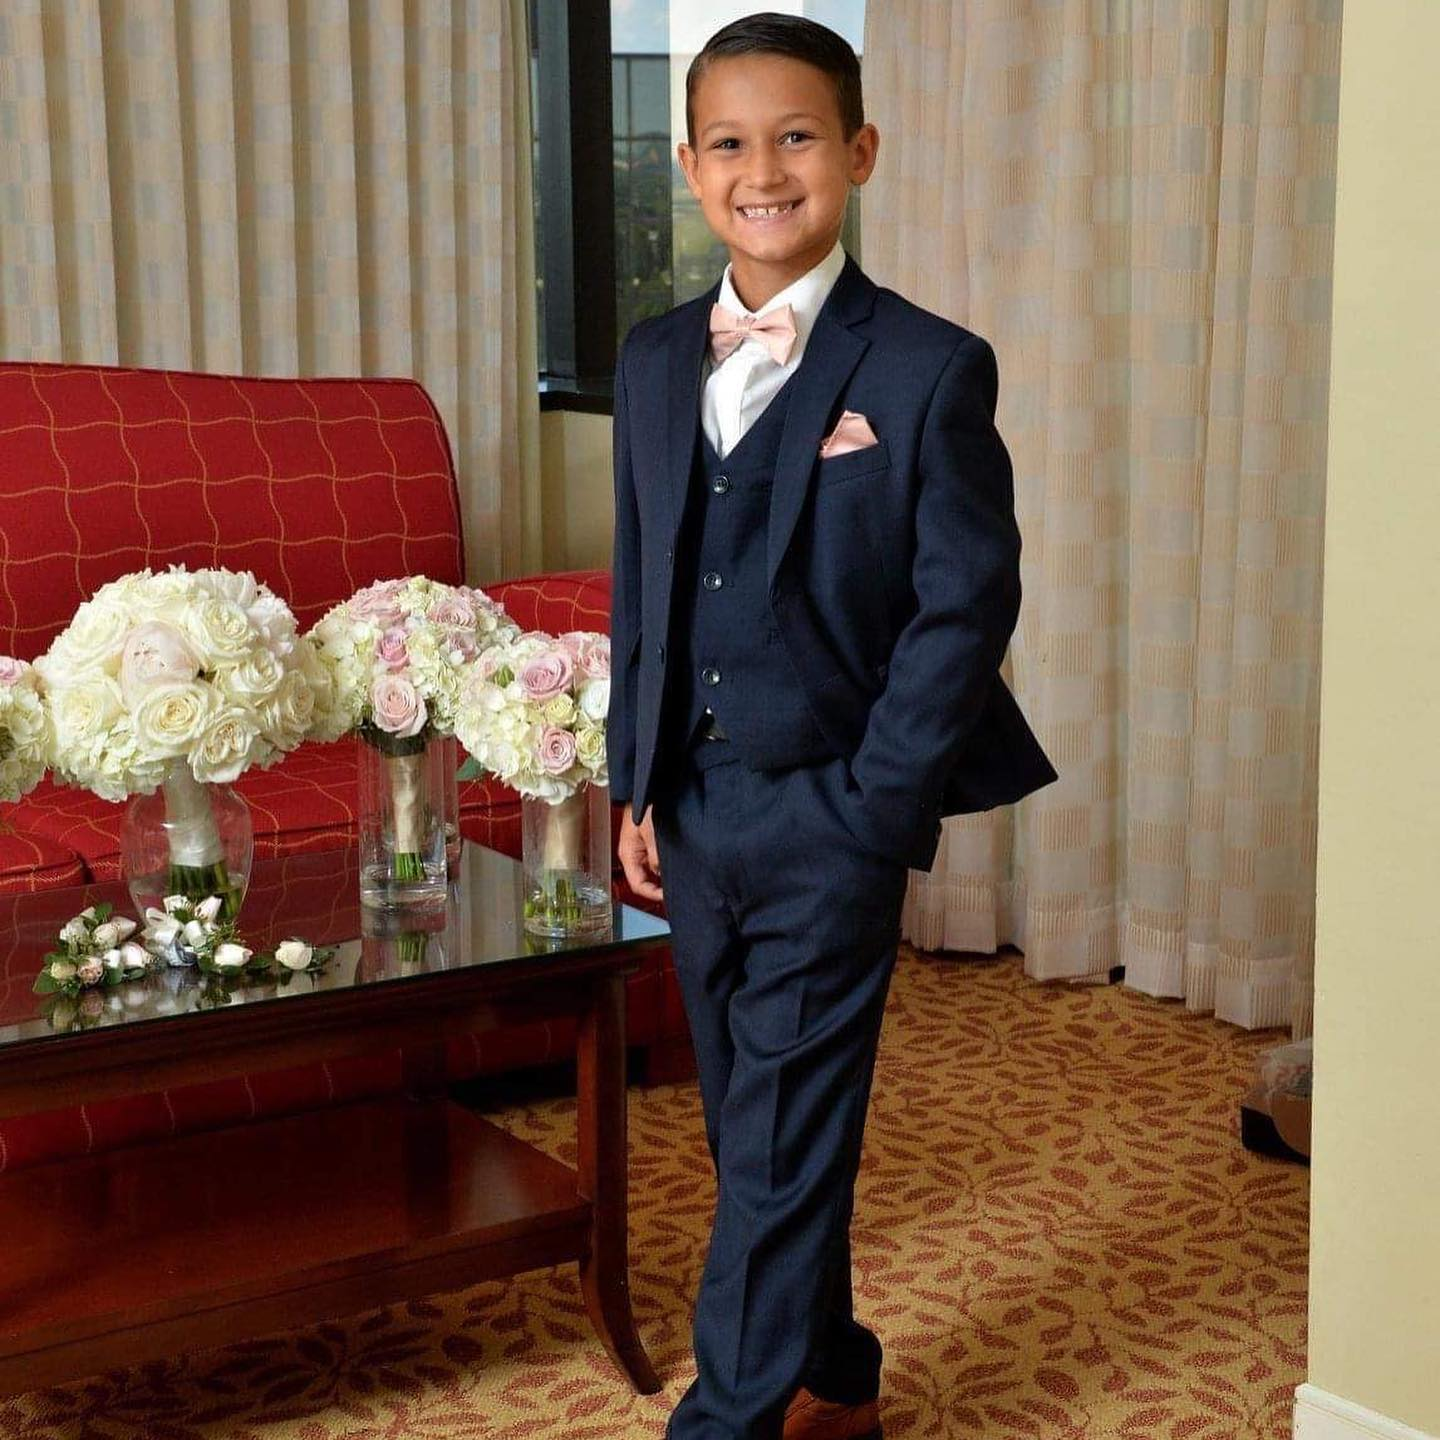 Ring bearer in navy tuxedo from Tuxedos to Geaux